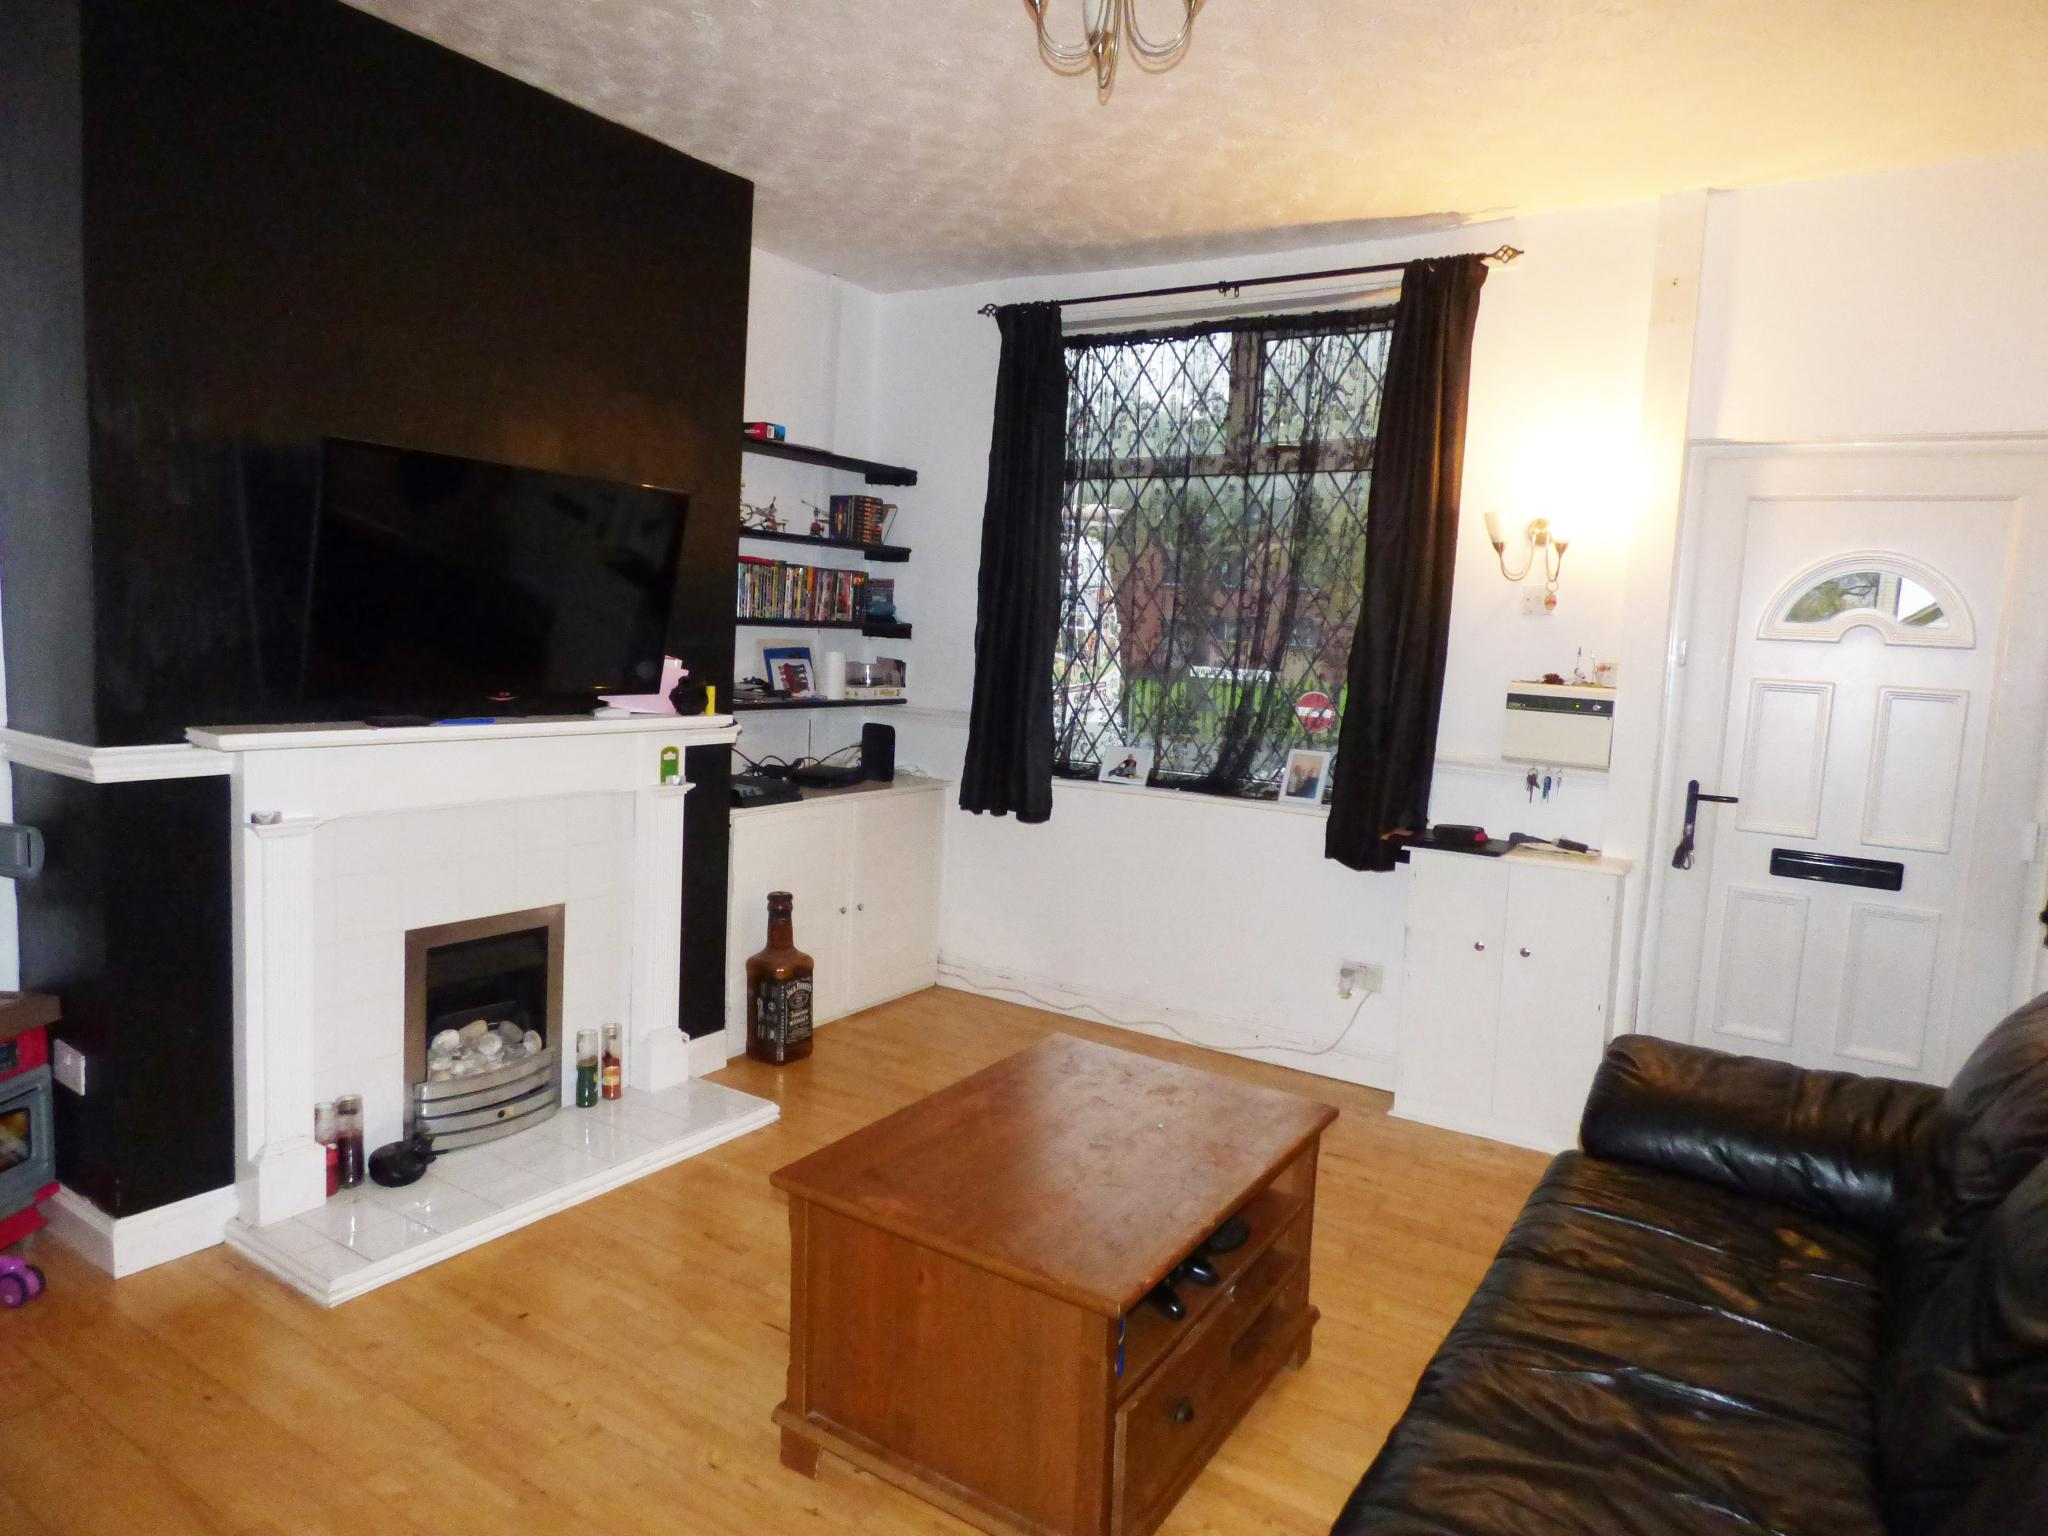 2 Bedroom Mid Terraced House For Sale in 27 Chapel Street, Stockport on